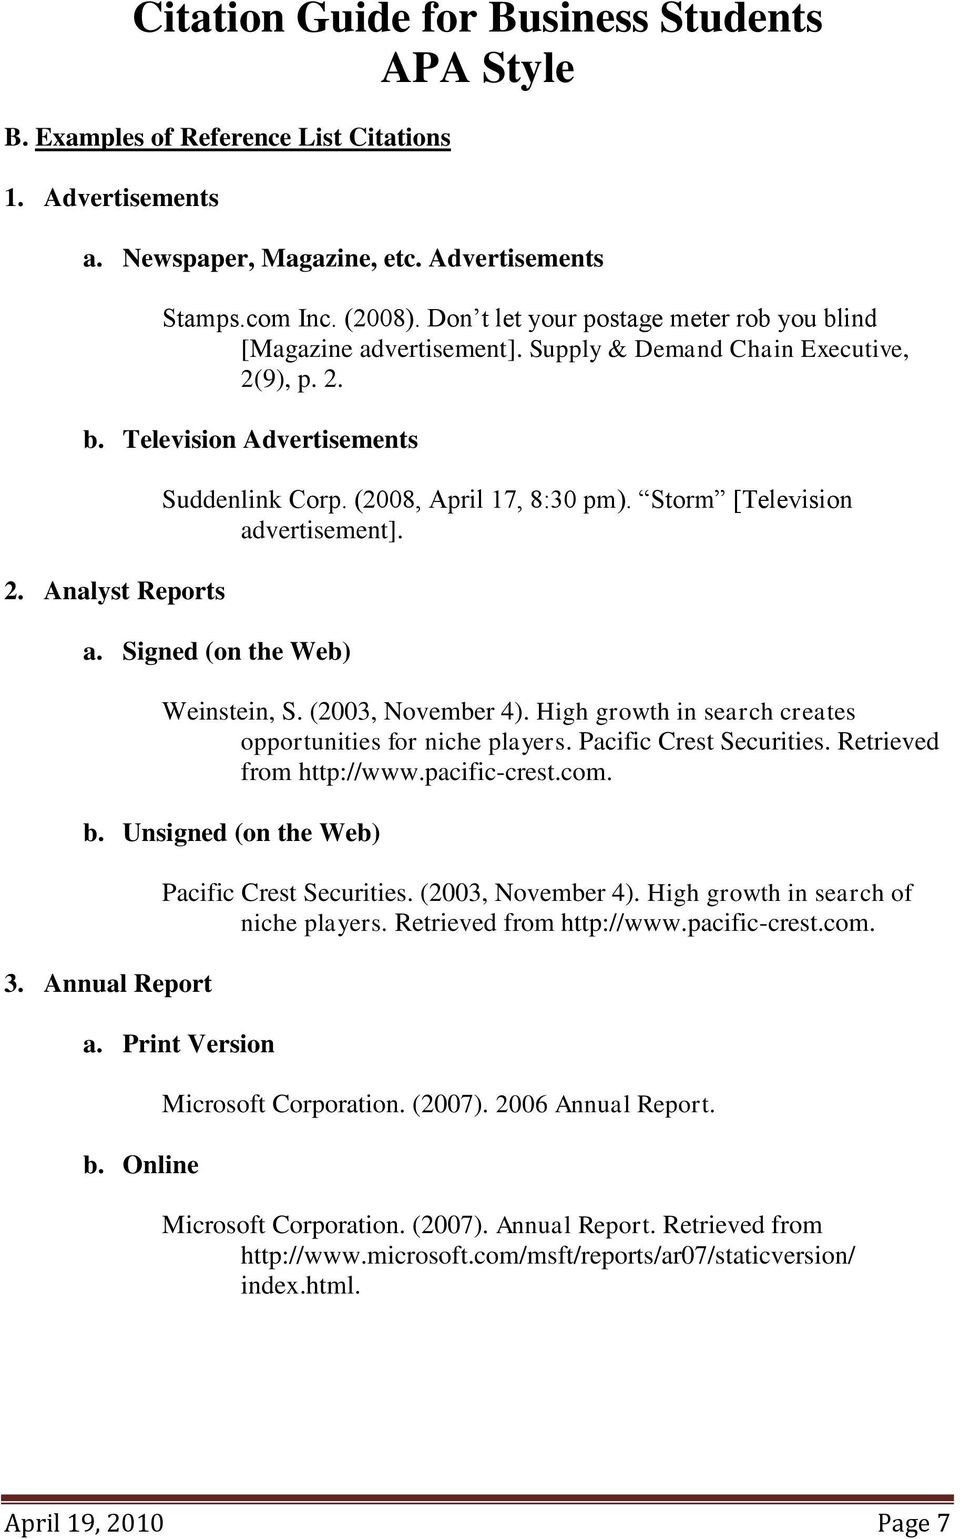 (2003, November 4). High growth in search creates opportunities for niche players. Pacific Crest Securities. Retrieved from http://www.pacific-crest.com. b. Unsigned (on the Web) 3.